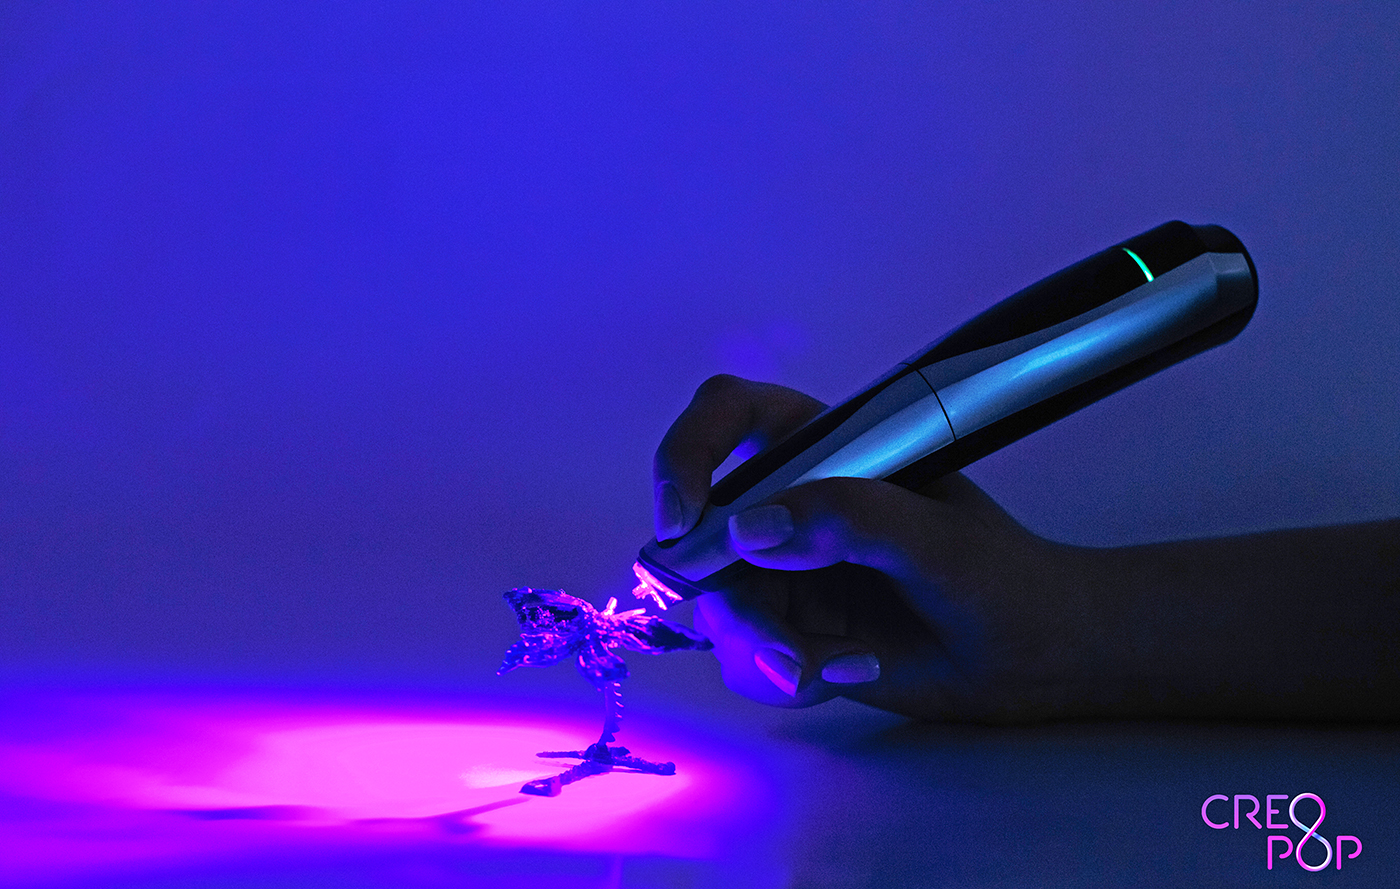 Singapore's CreoPop raises seed funding round for its 3D printing pen